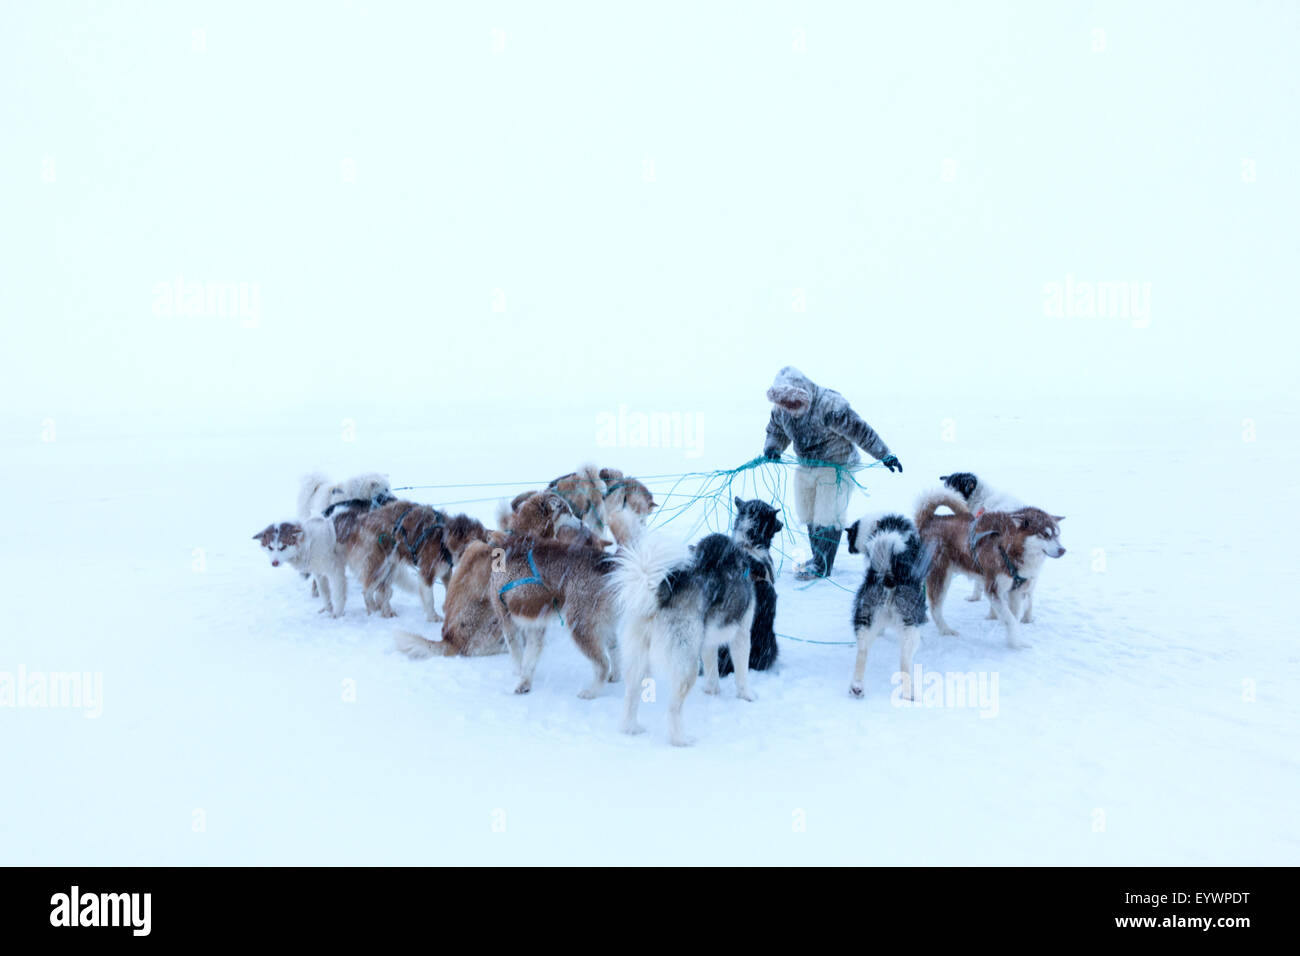 Inuit hunter untangling the lines on his dog team on the sea ice in a snow storm, Greenland, Denmark, Polar Regions - Stock Image